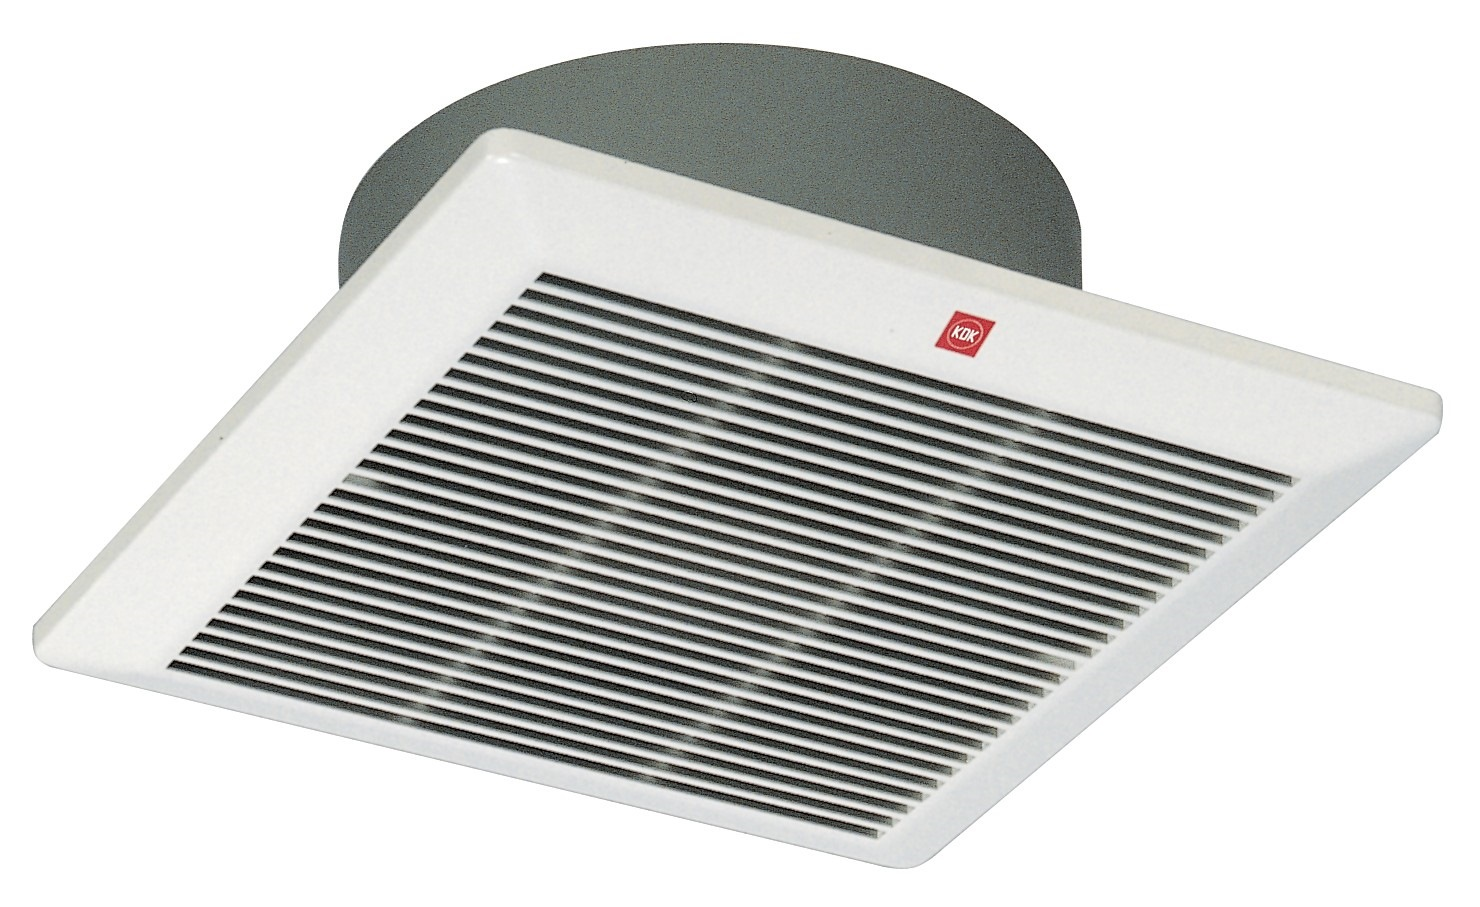 Mountable Exhaust Fan : Kdk ceiling mount ventilating fan cm cqt fans